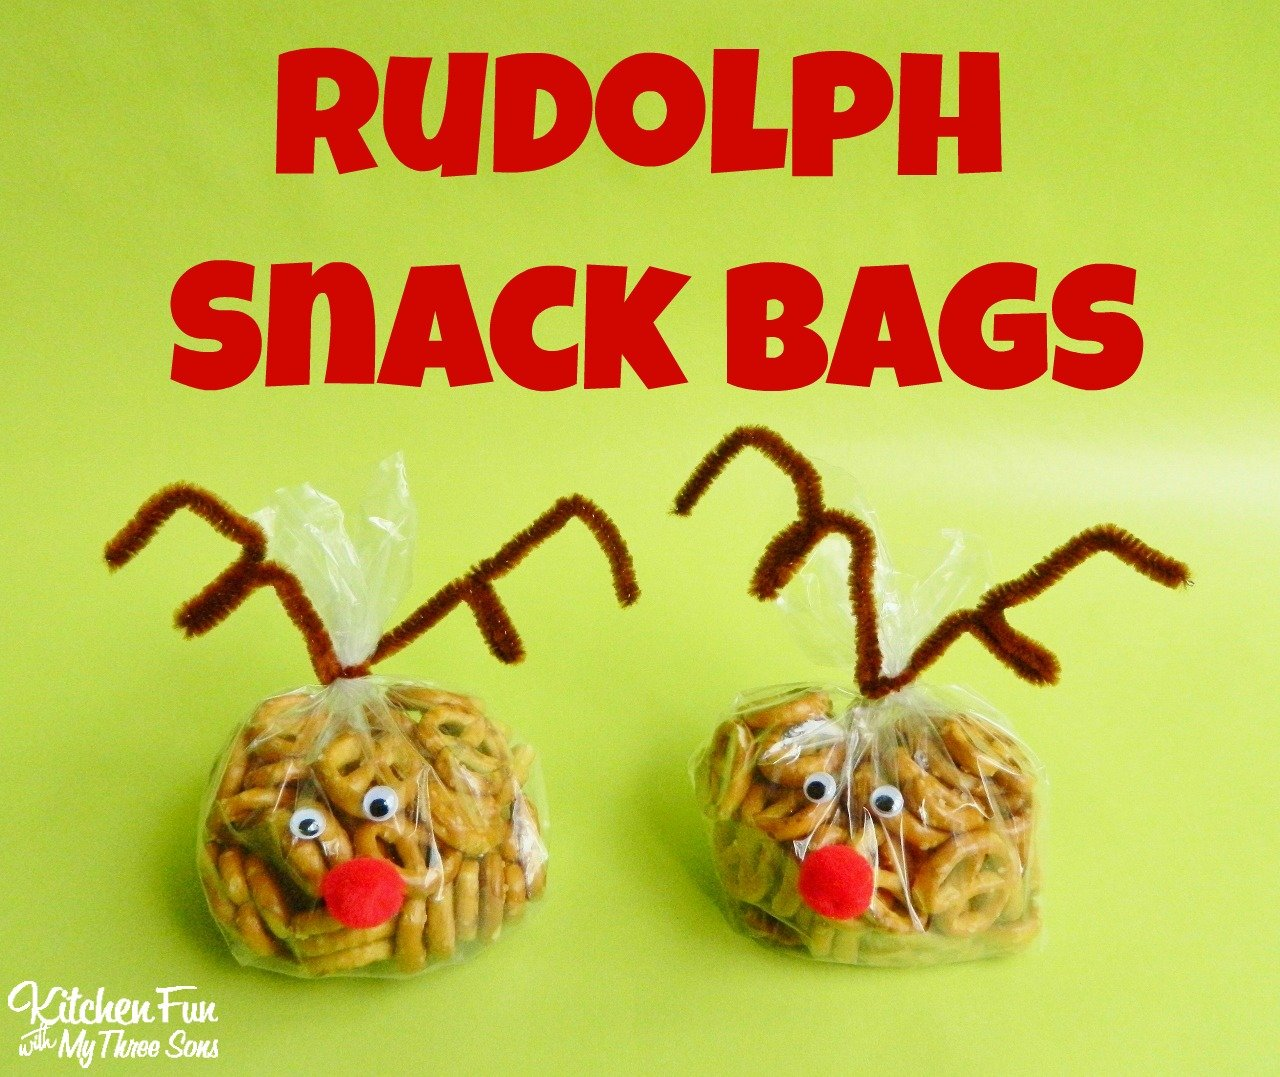 Rudolph the red nosed reindeer snack bags kitchen fun